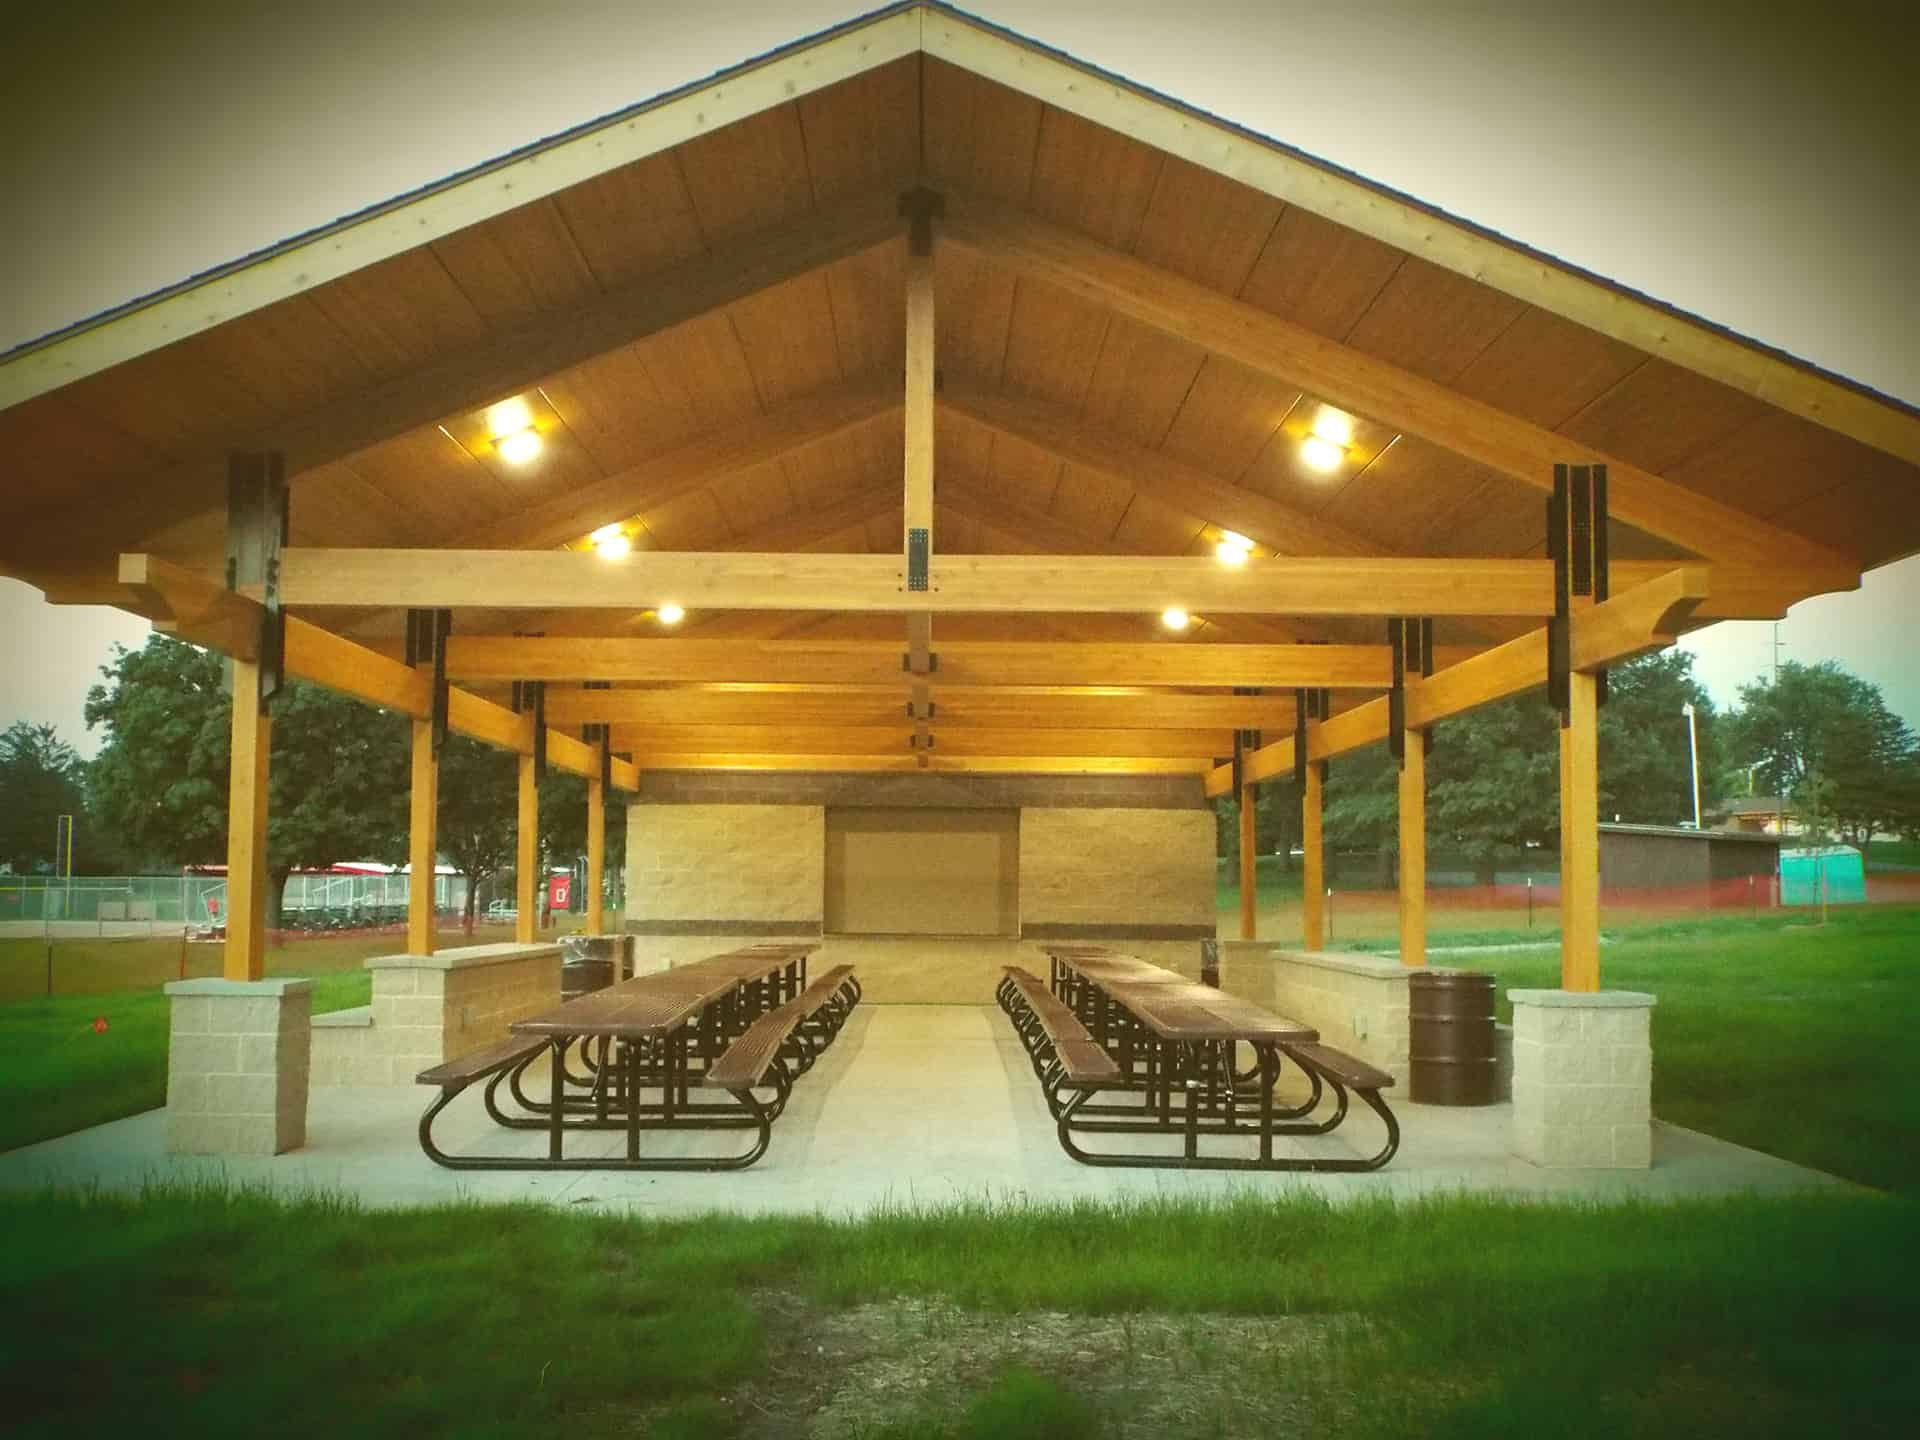 New Park Shelter Seating Area